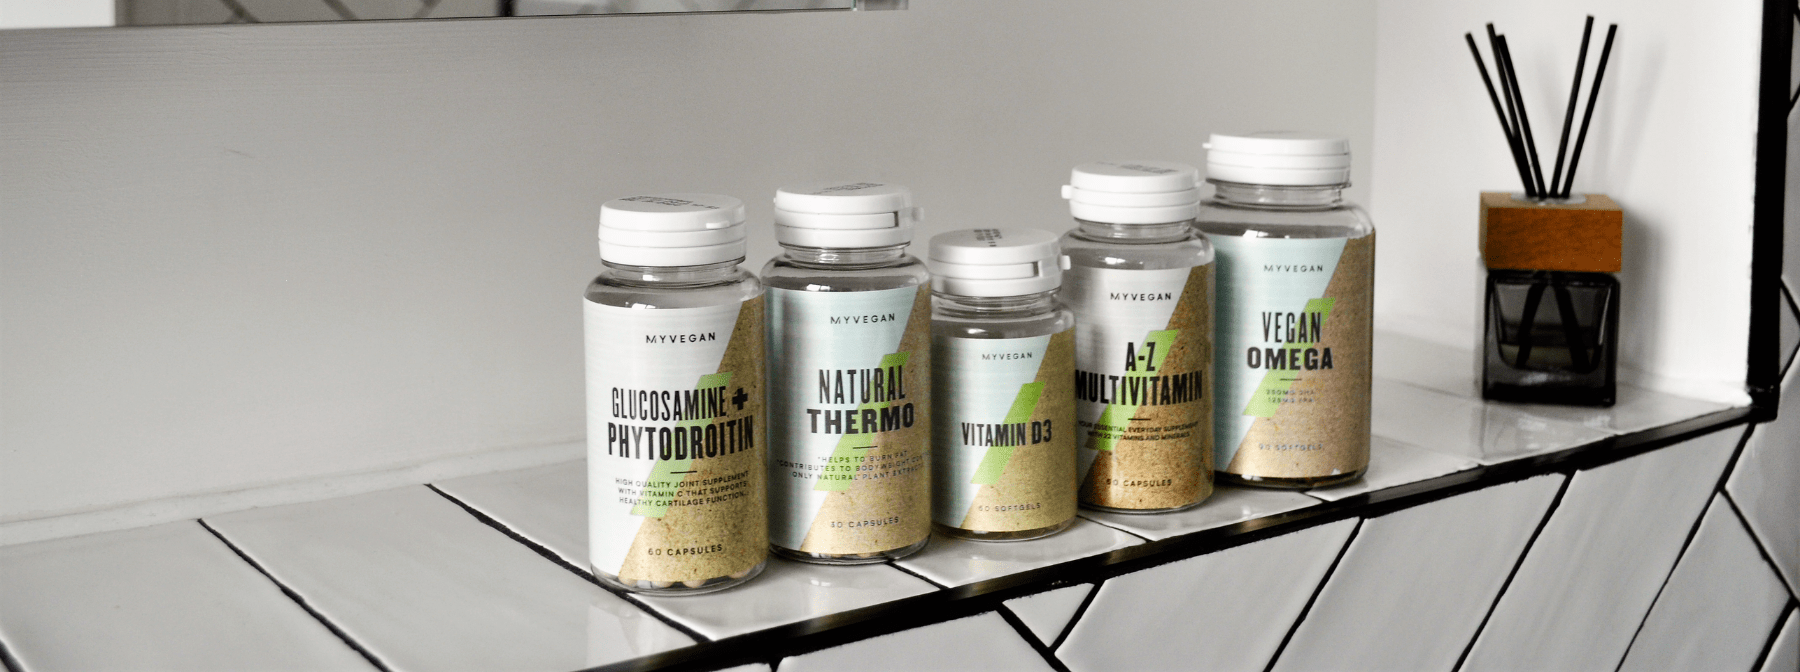 Tablets & Capsules — Take Your Plant-Based Nutrition To New Heights